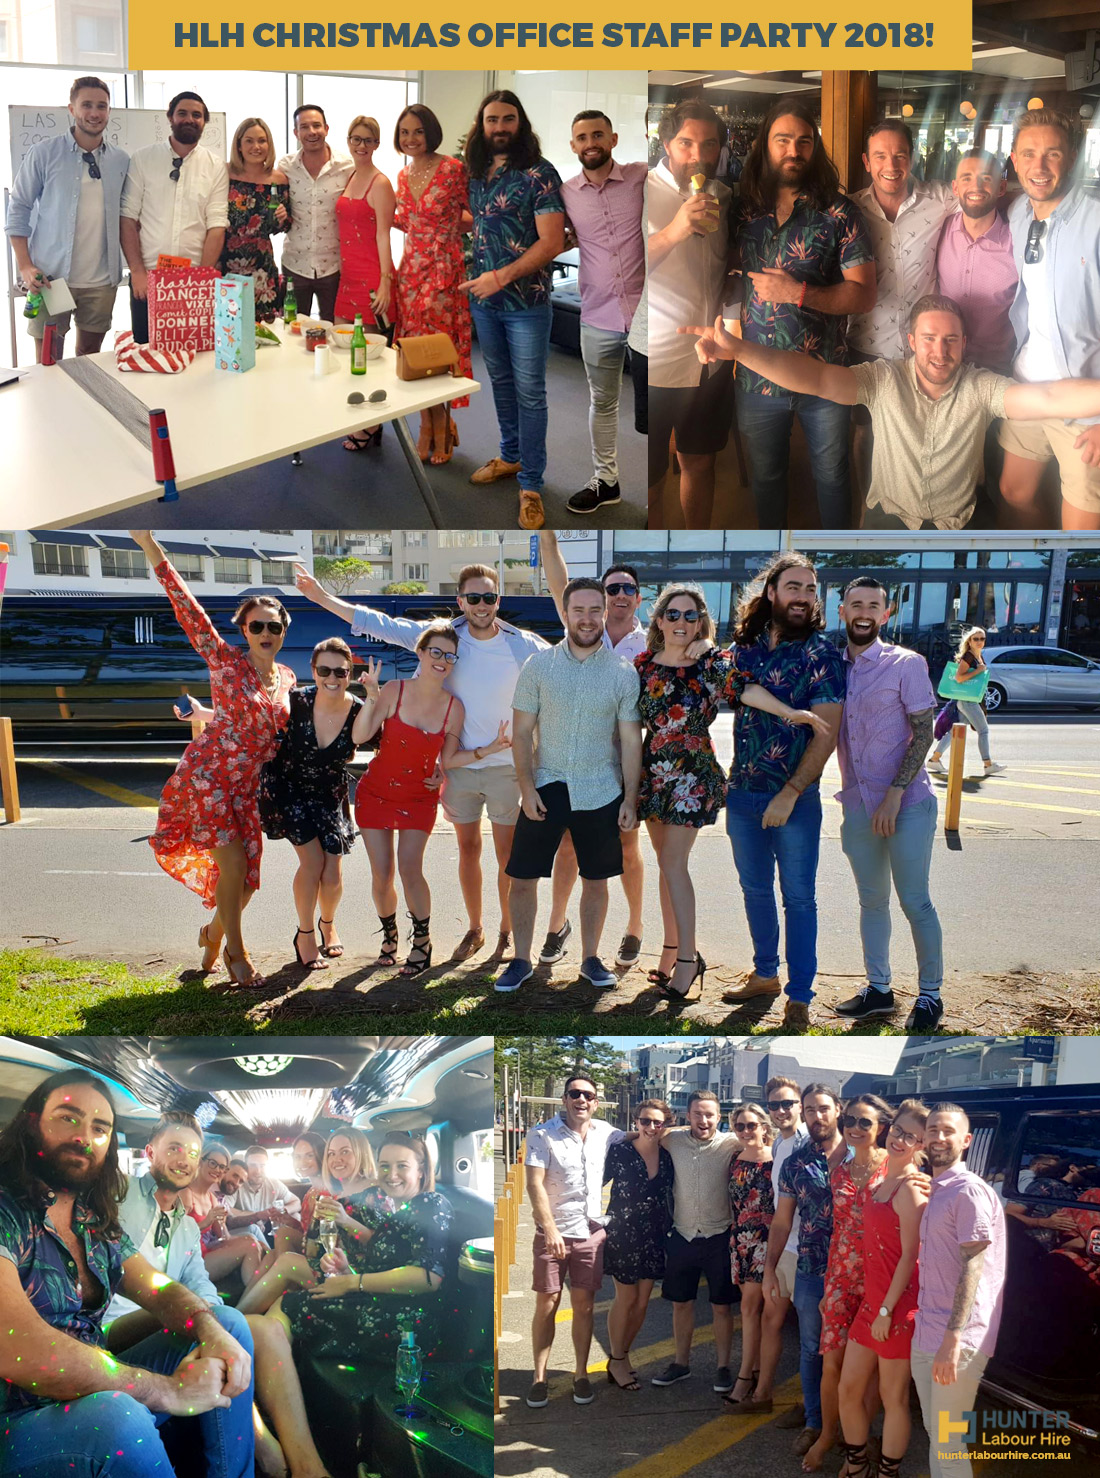 Hunter Labour Hire Christmas Office Staff Party 2018